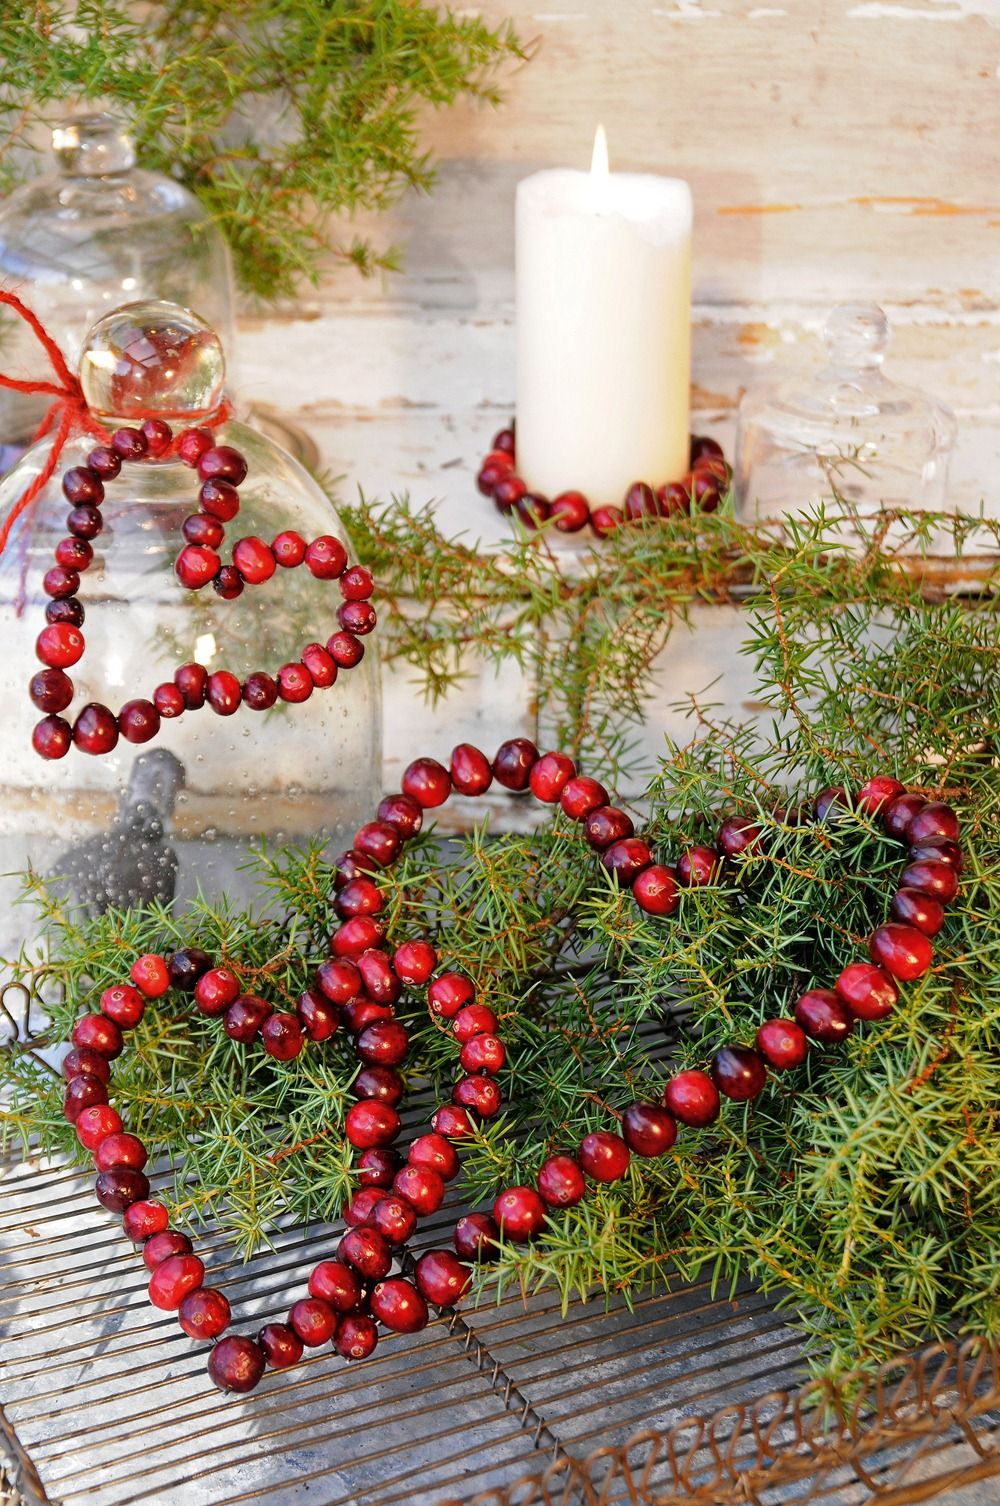 Cranberry Christmas hearts decorations green branches candle